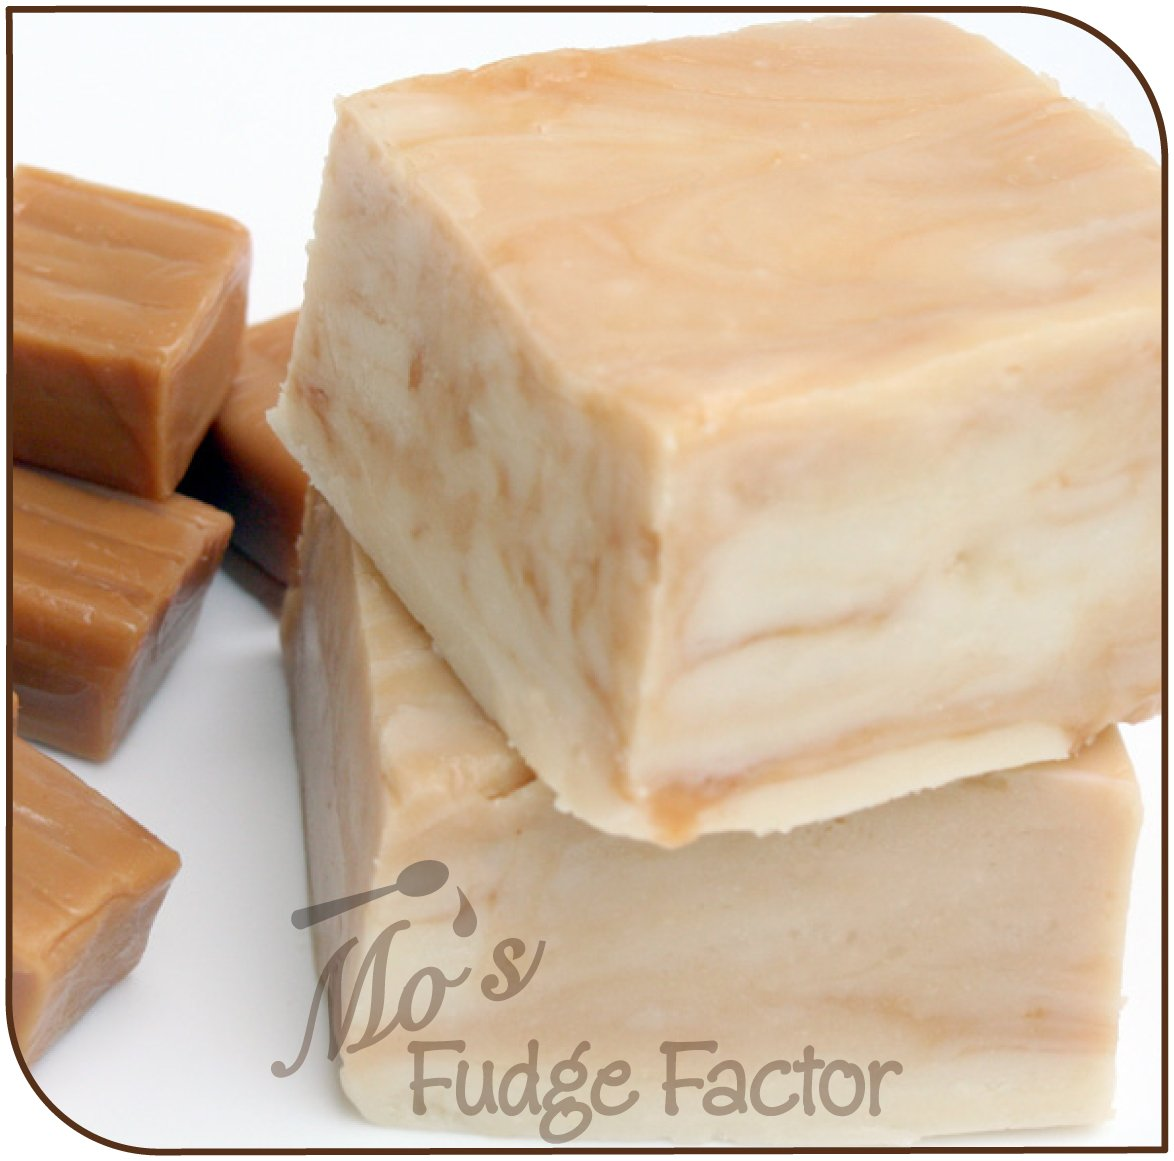 Amazon.com : Mos Fudge Factor, Dulce de Leche Fudge 2 pounds : Grocery & Gourmet Food